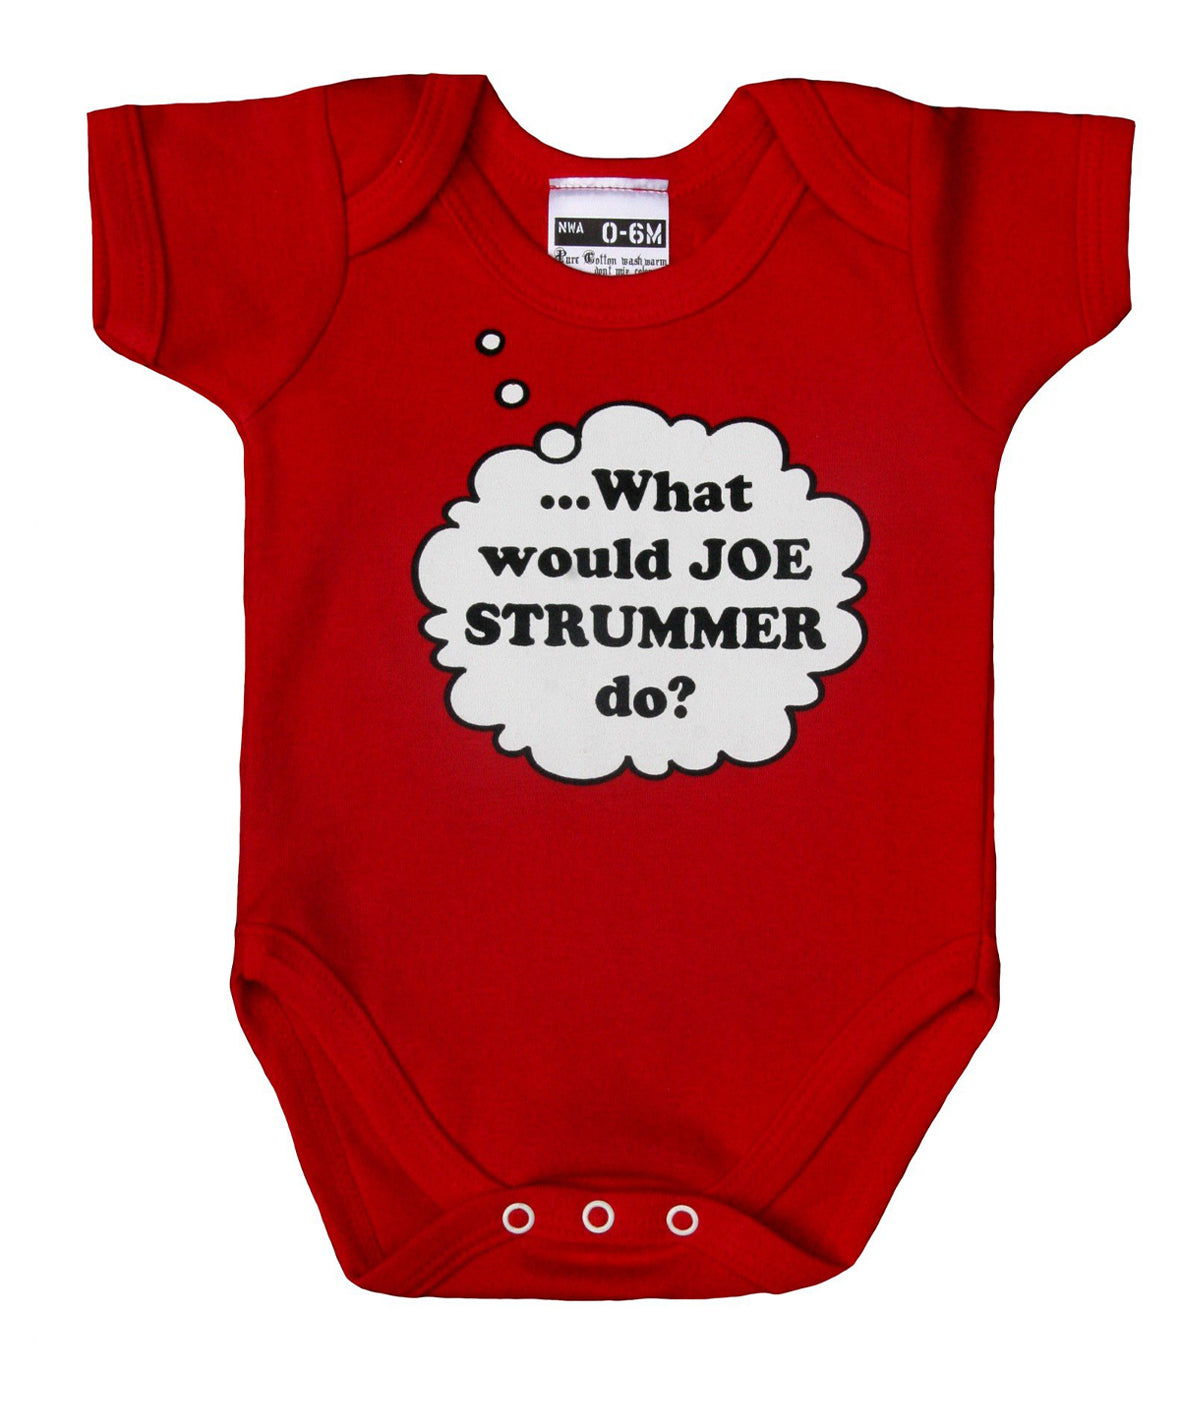 WHAT WOULD JOE STRUMMER DO? BABYGROW